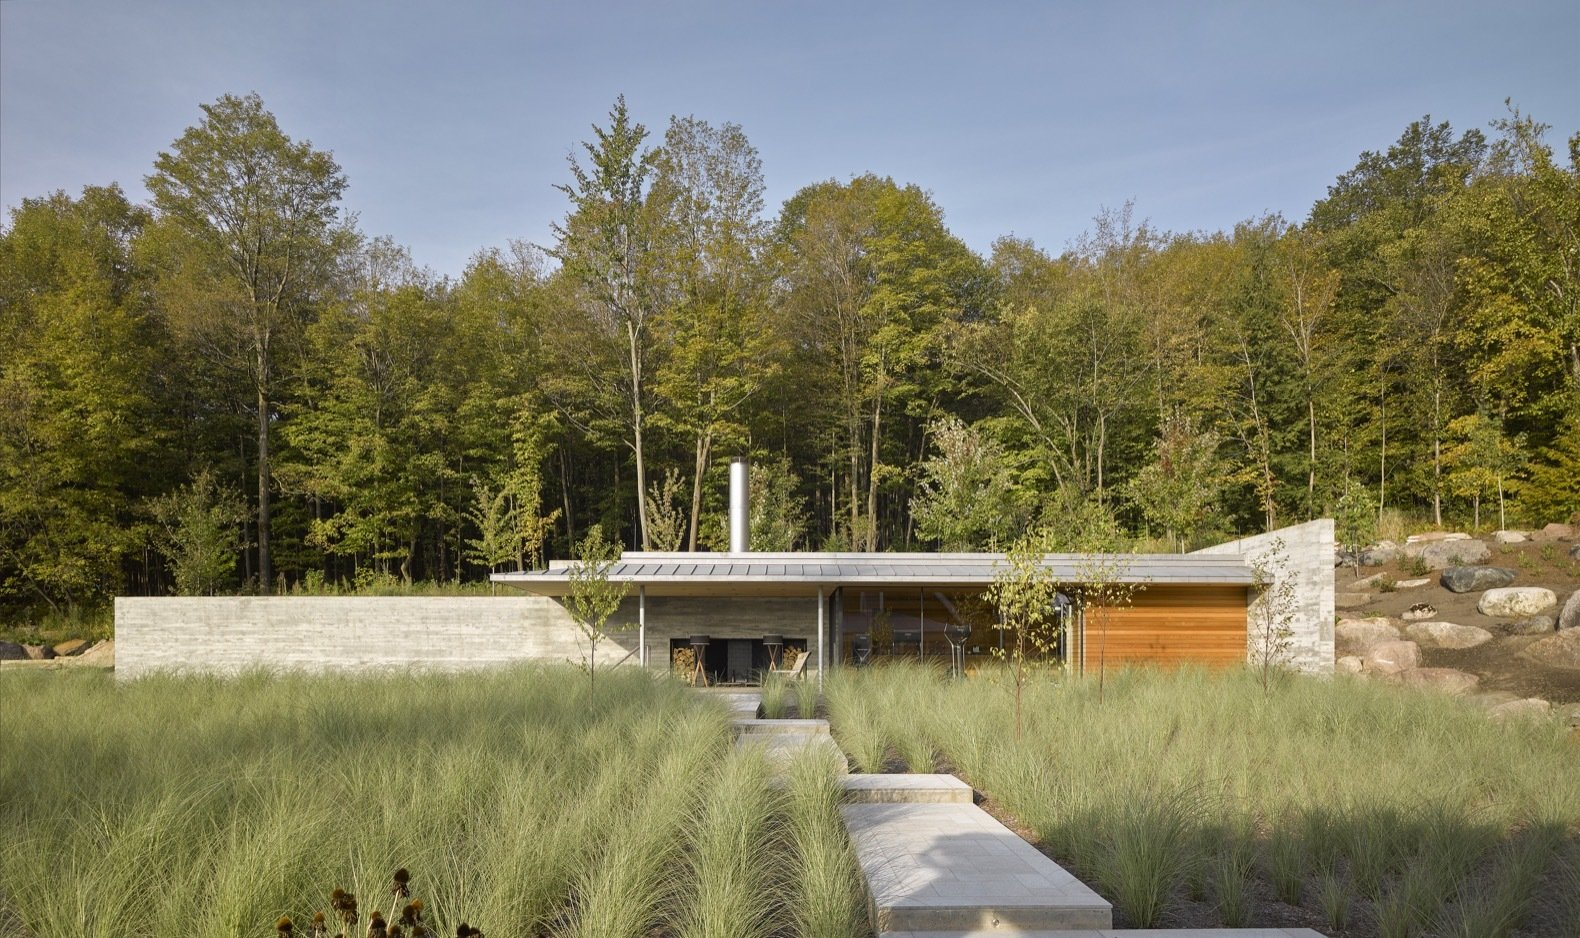 A Sleek Pool House Channeling Mies van der Rohe Grows From a Mountainside